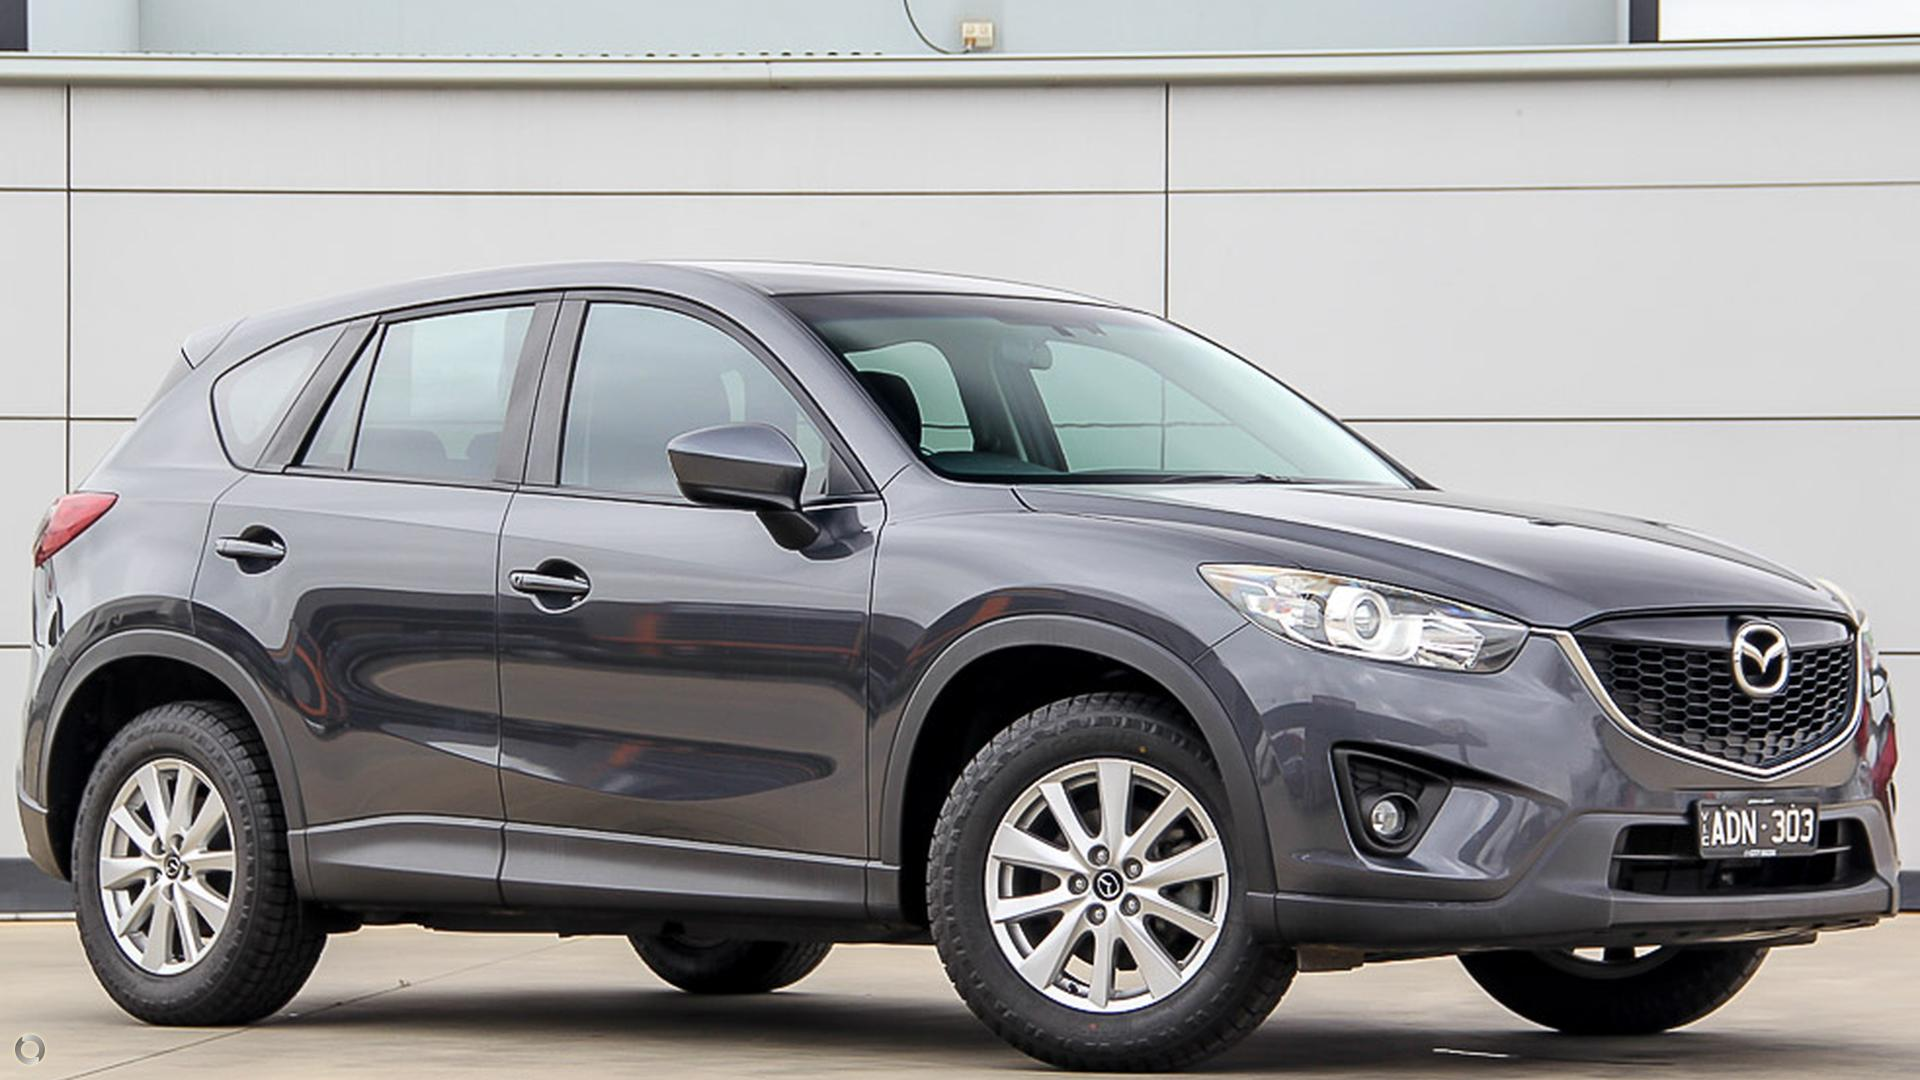 2014 Mazda Cx-5 KE Series